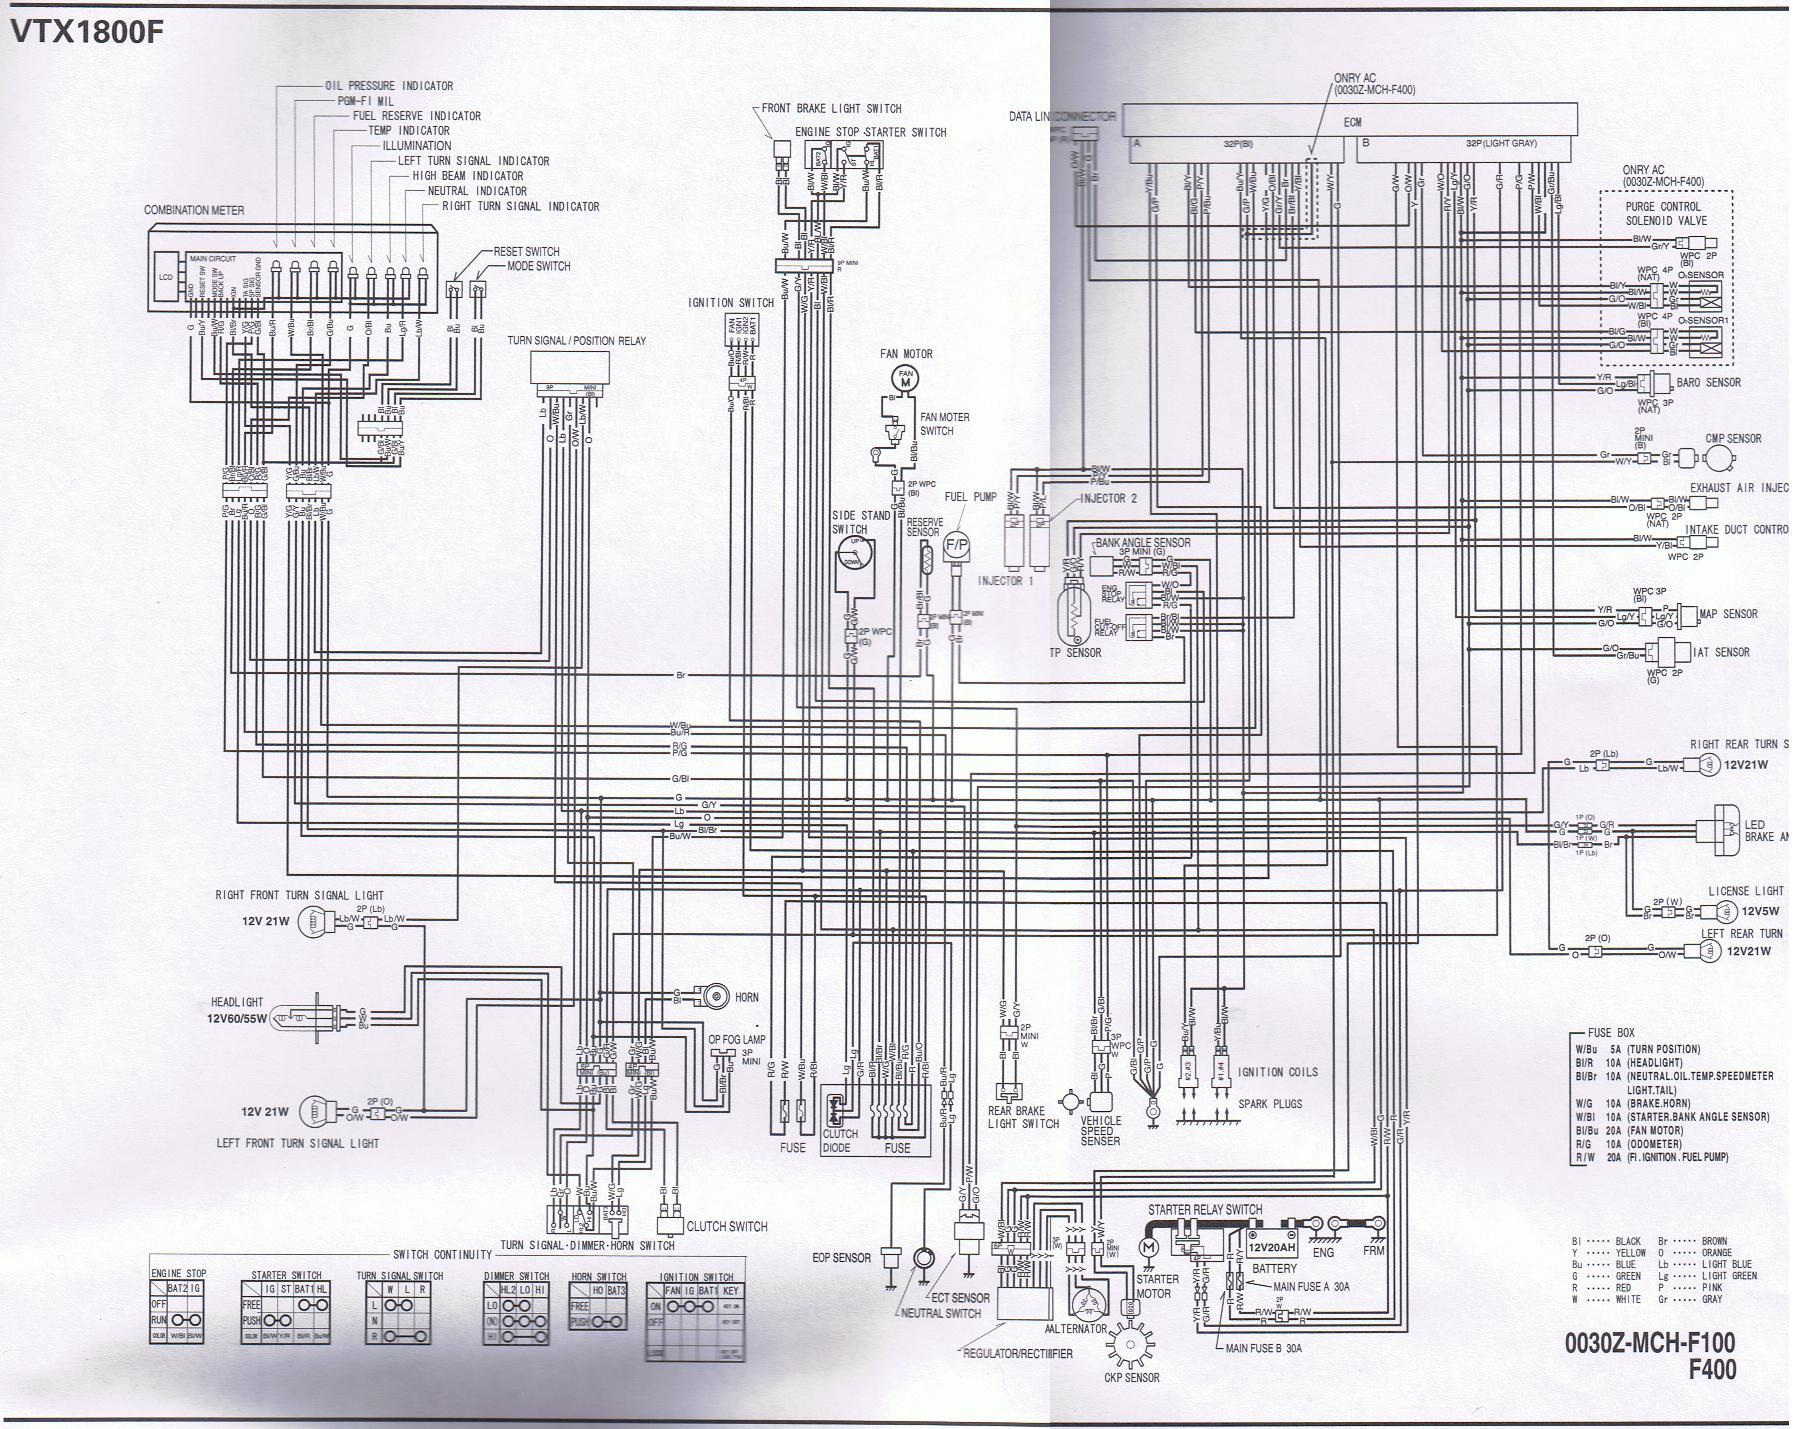 05+_VTX1800_F_schematic motorcycle wire schematics bareass choppers motorcycle tech pages wiring diagram for victory motorcycles at fashall.co